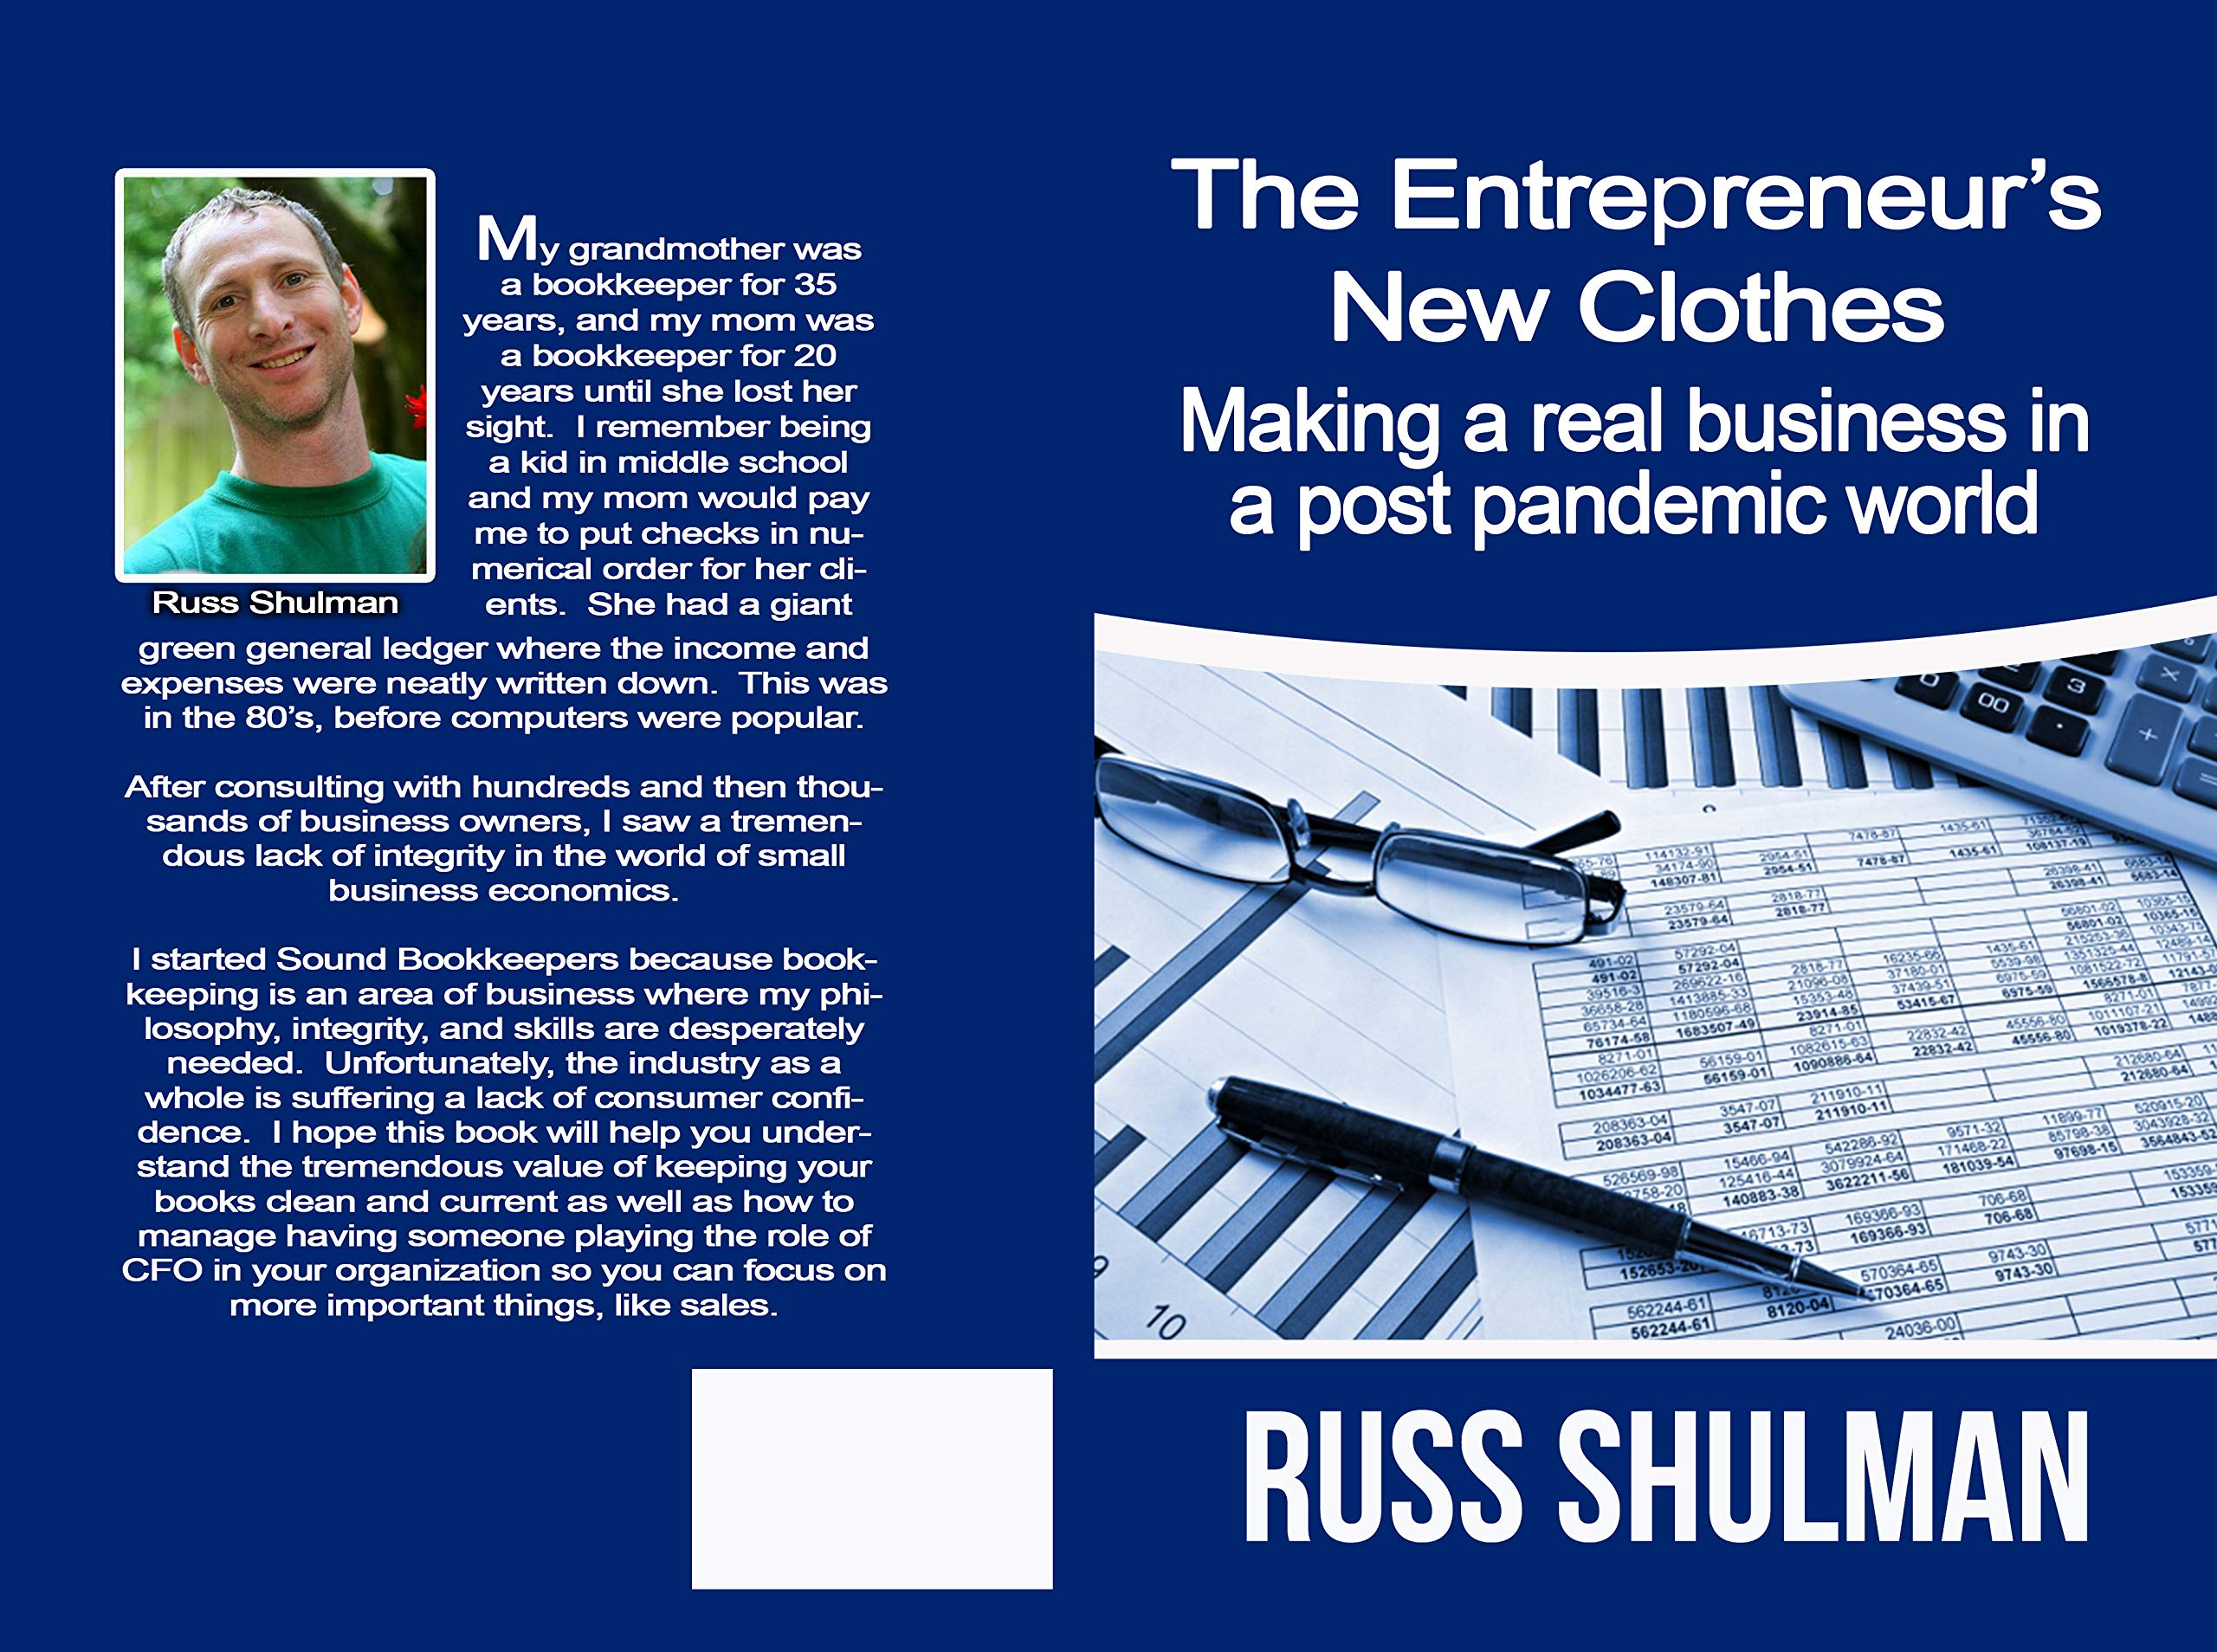 The Entrepreneur's New Clothes: How to make a profit in a post pandemic world